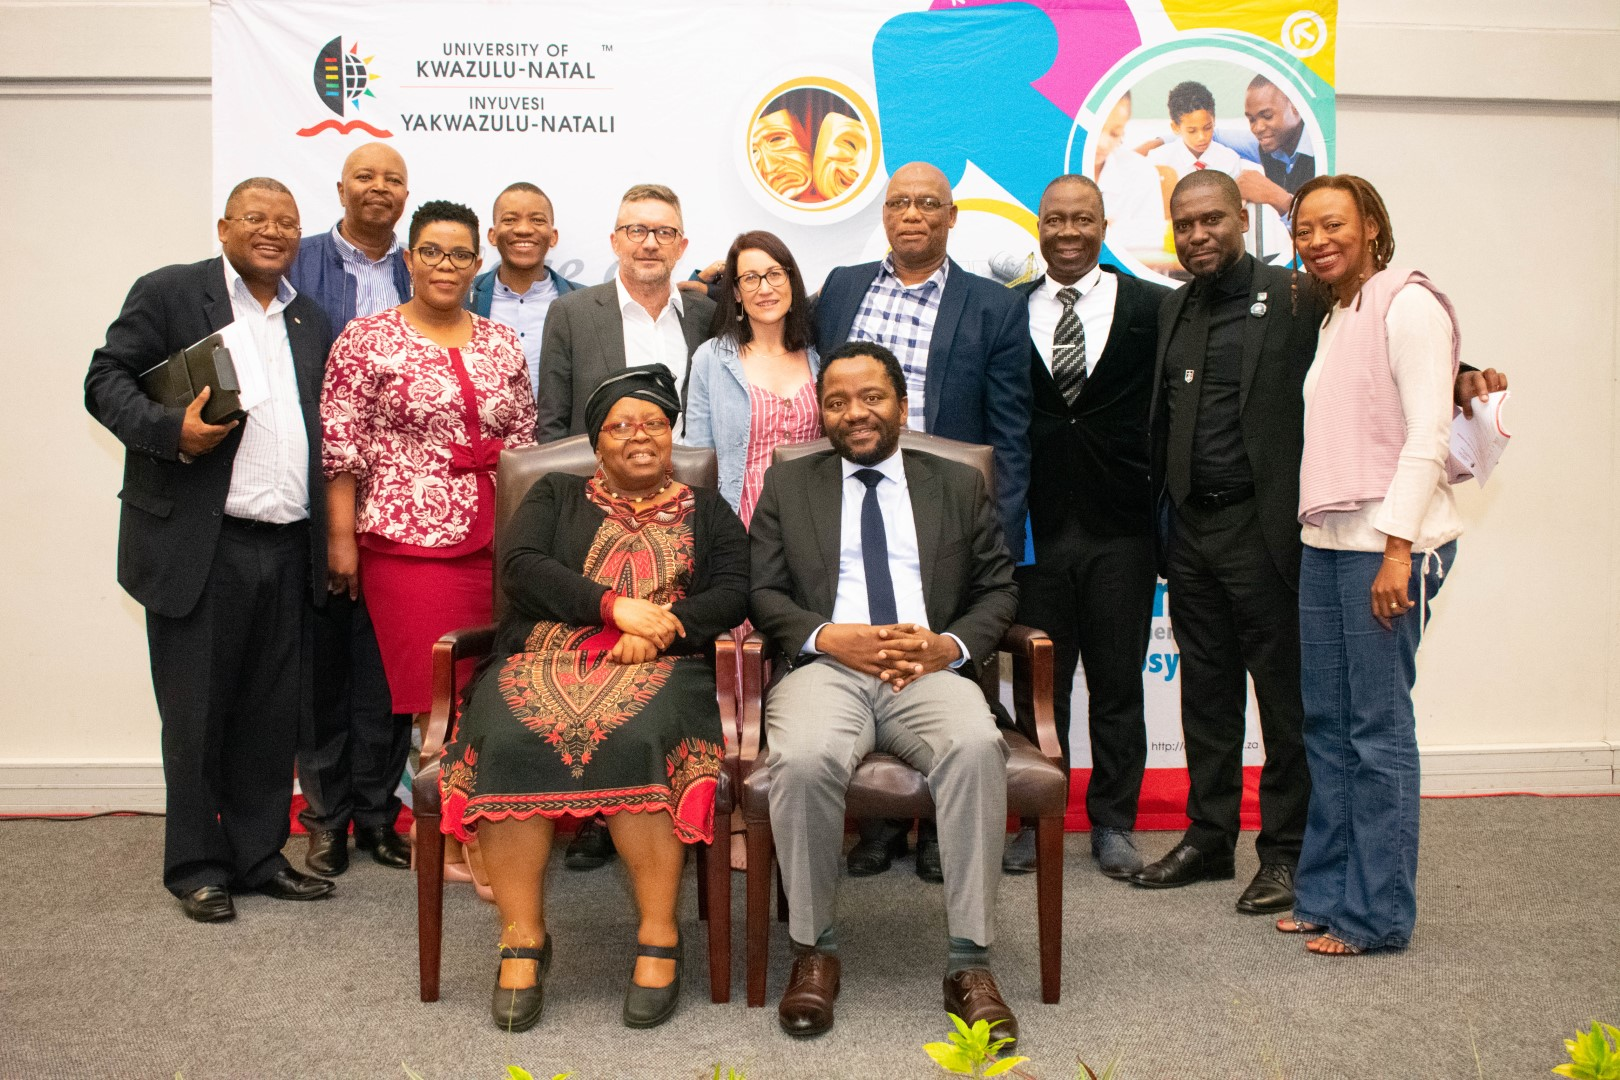 Dr Bongani Ngqulunga (seated right) seen with UKZN staffers at the John Dube Memorial Lecture on the Edgewood campus